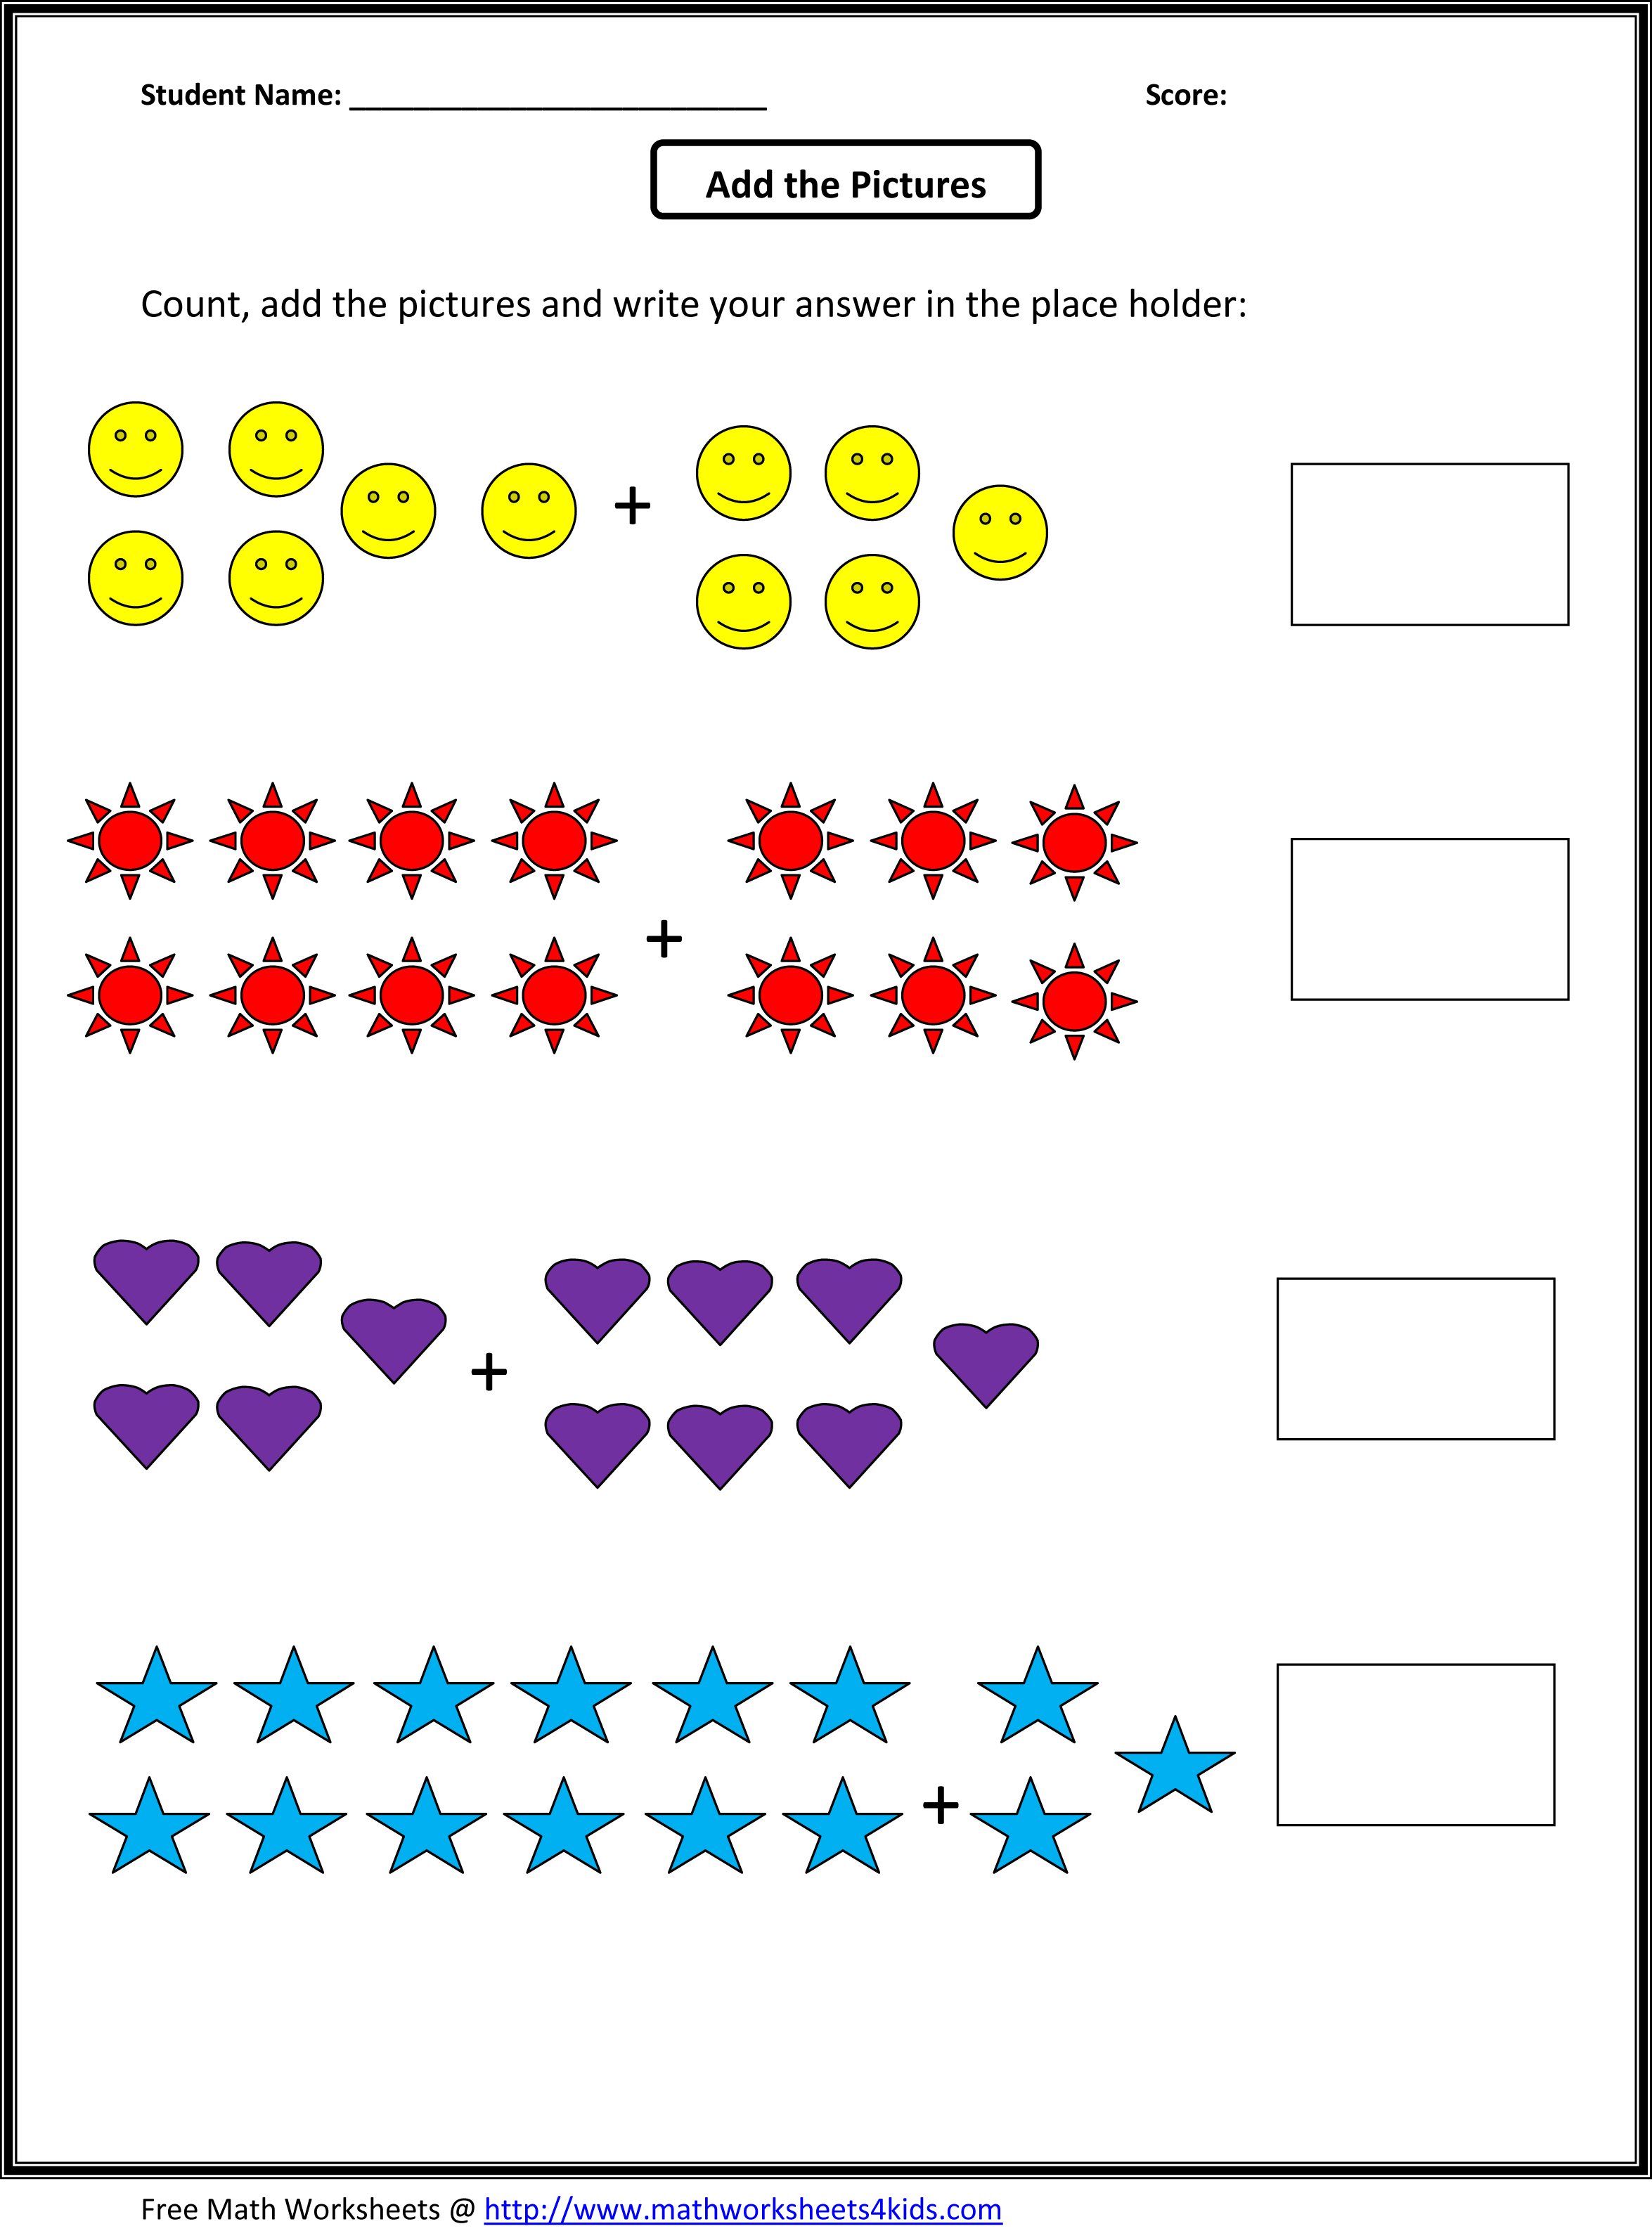 Weirdmailus  Personable Grade  Maths Worksheet  Reocurent With Luxury Math Worksheets For St Grade Free  Reocurent With Beauteous Cut And Paste Halloween Worksheets Also Multiplying Whole Numbers By Fractions Worksheets In Addition Cell Surface Area To Volume Ratio Worksheet And Decimal Comparison Worksheet As Well As Geometry Translation Worksheets Additionally Weather Worksheets For Rd Grade From Reocurentcom With Weirdmailus  Luxury Grade  Maths Worksheet  Reocurent With Beauteous Math Worksheets For St Grade Free  Reocurent And Personable Cut And Paste Halloween Worksheets Also Multiplying Whole Numbers By Fractions Worksheets In Addition Cell Surface Area To Volume Ratio Worksheet From Reocurentcom